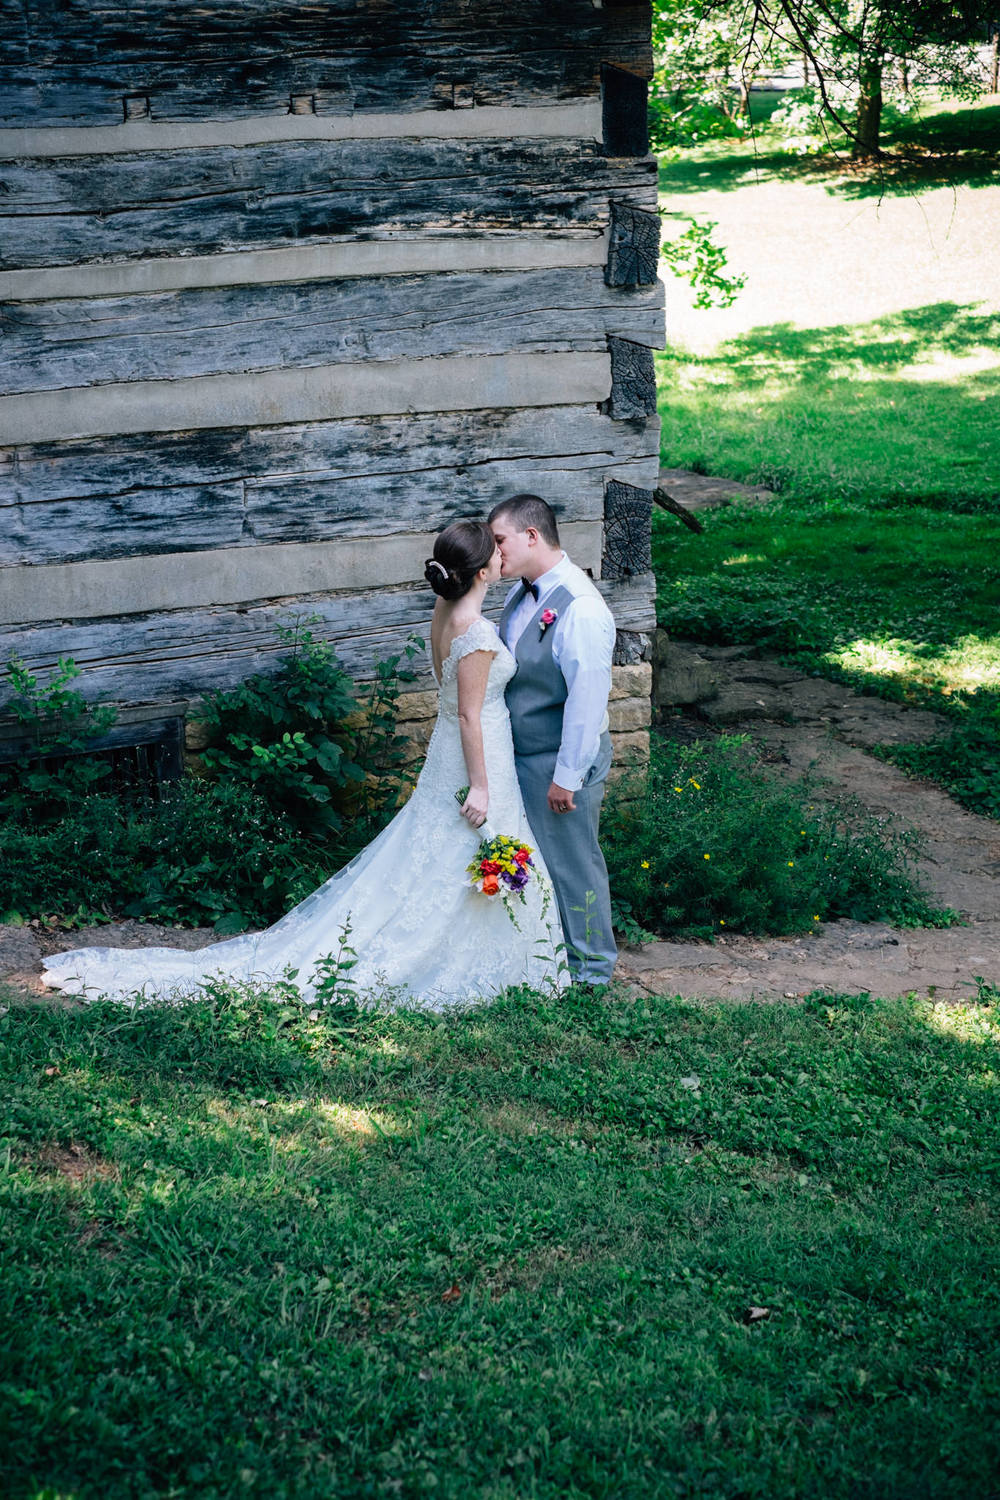 Jennifer&Drew_Wedding_Blog_028.jpg